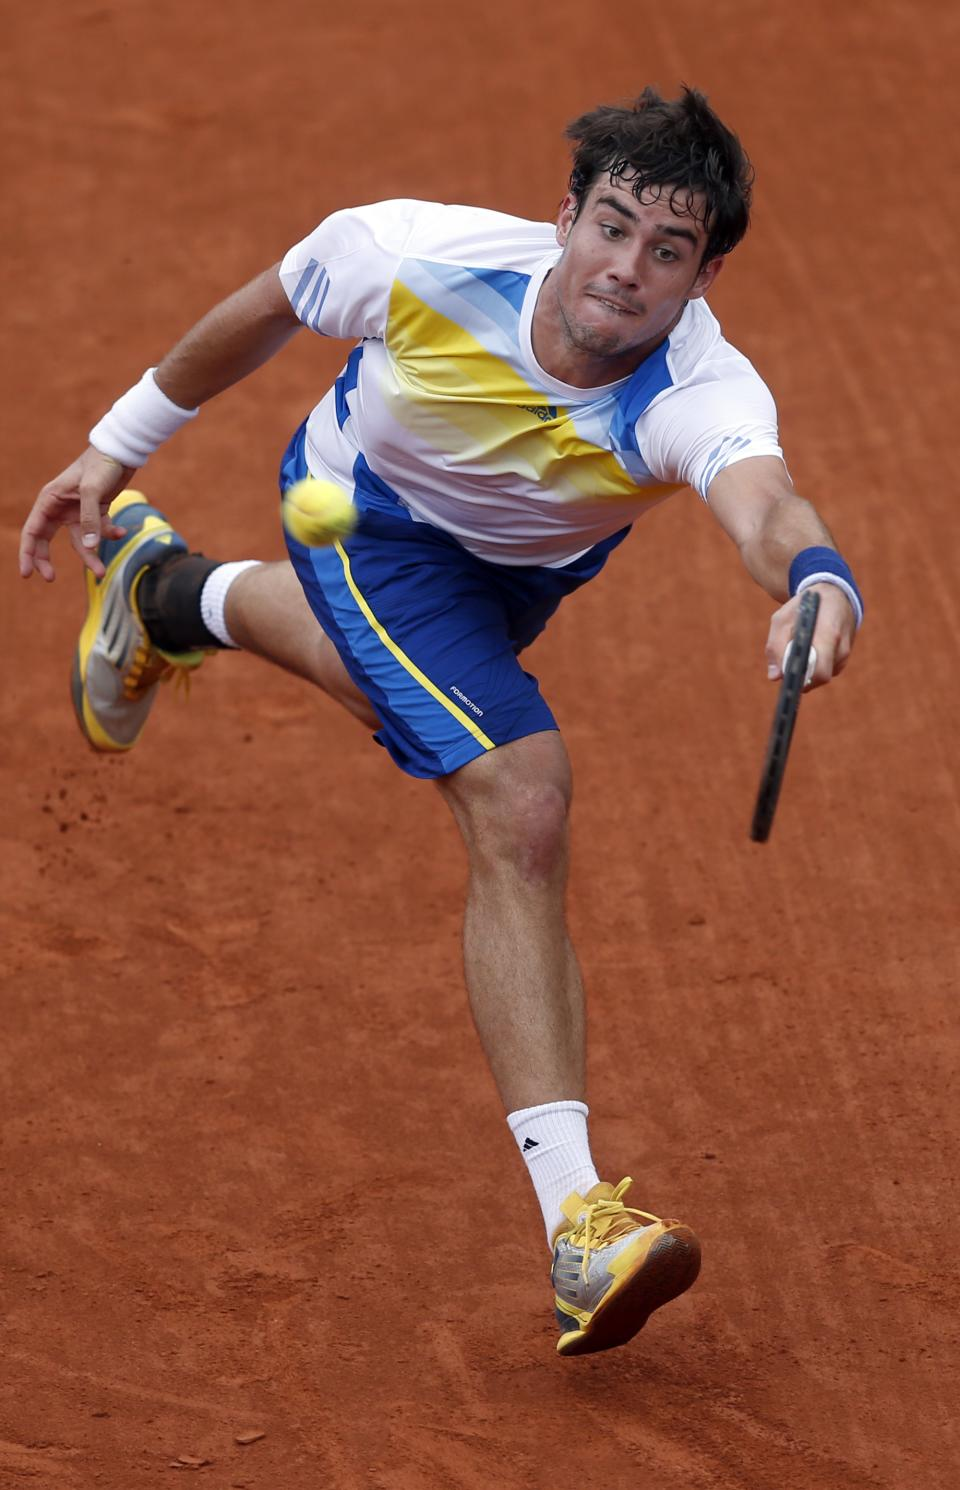 Argentina's Guido Pella returns the ball to Serbia's Novak Djokovic during their second round match of the French Open tennis tournament at the Roland Garros stadium Thursday, May 30, 2013 in Paris. Djokovic won 6-2, 6-0, 6-2. (AP Photo/Petr David Josek)